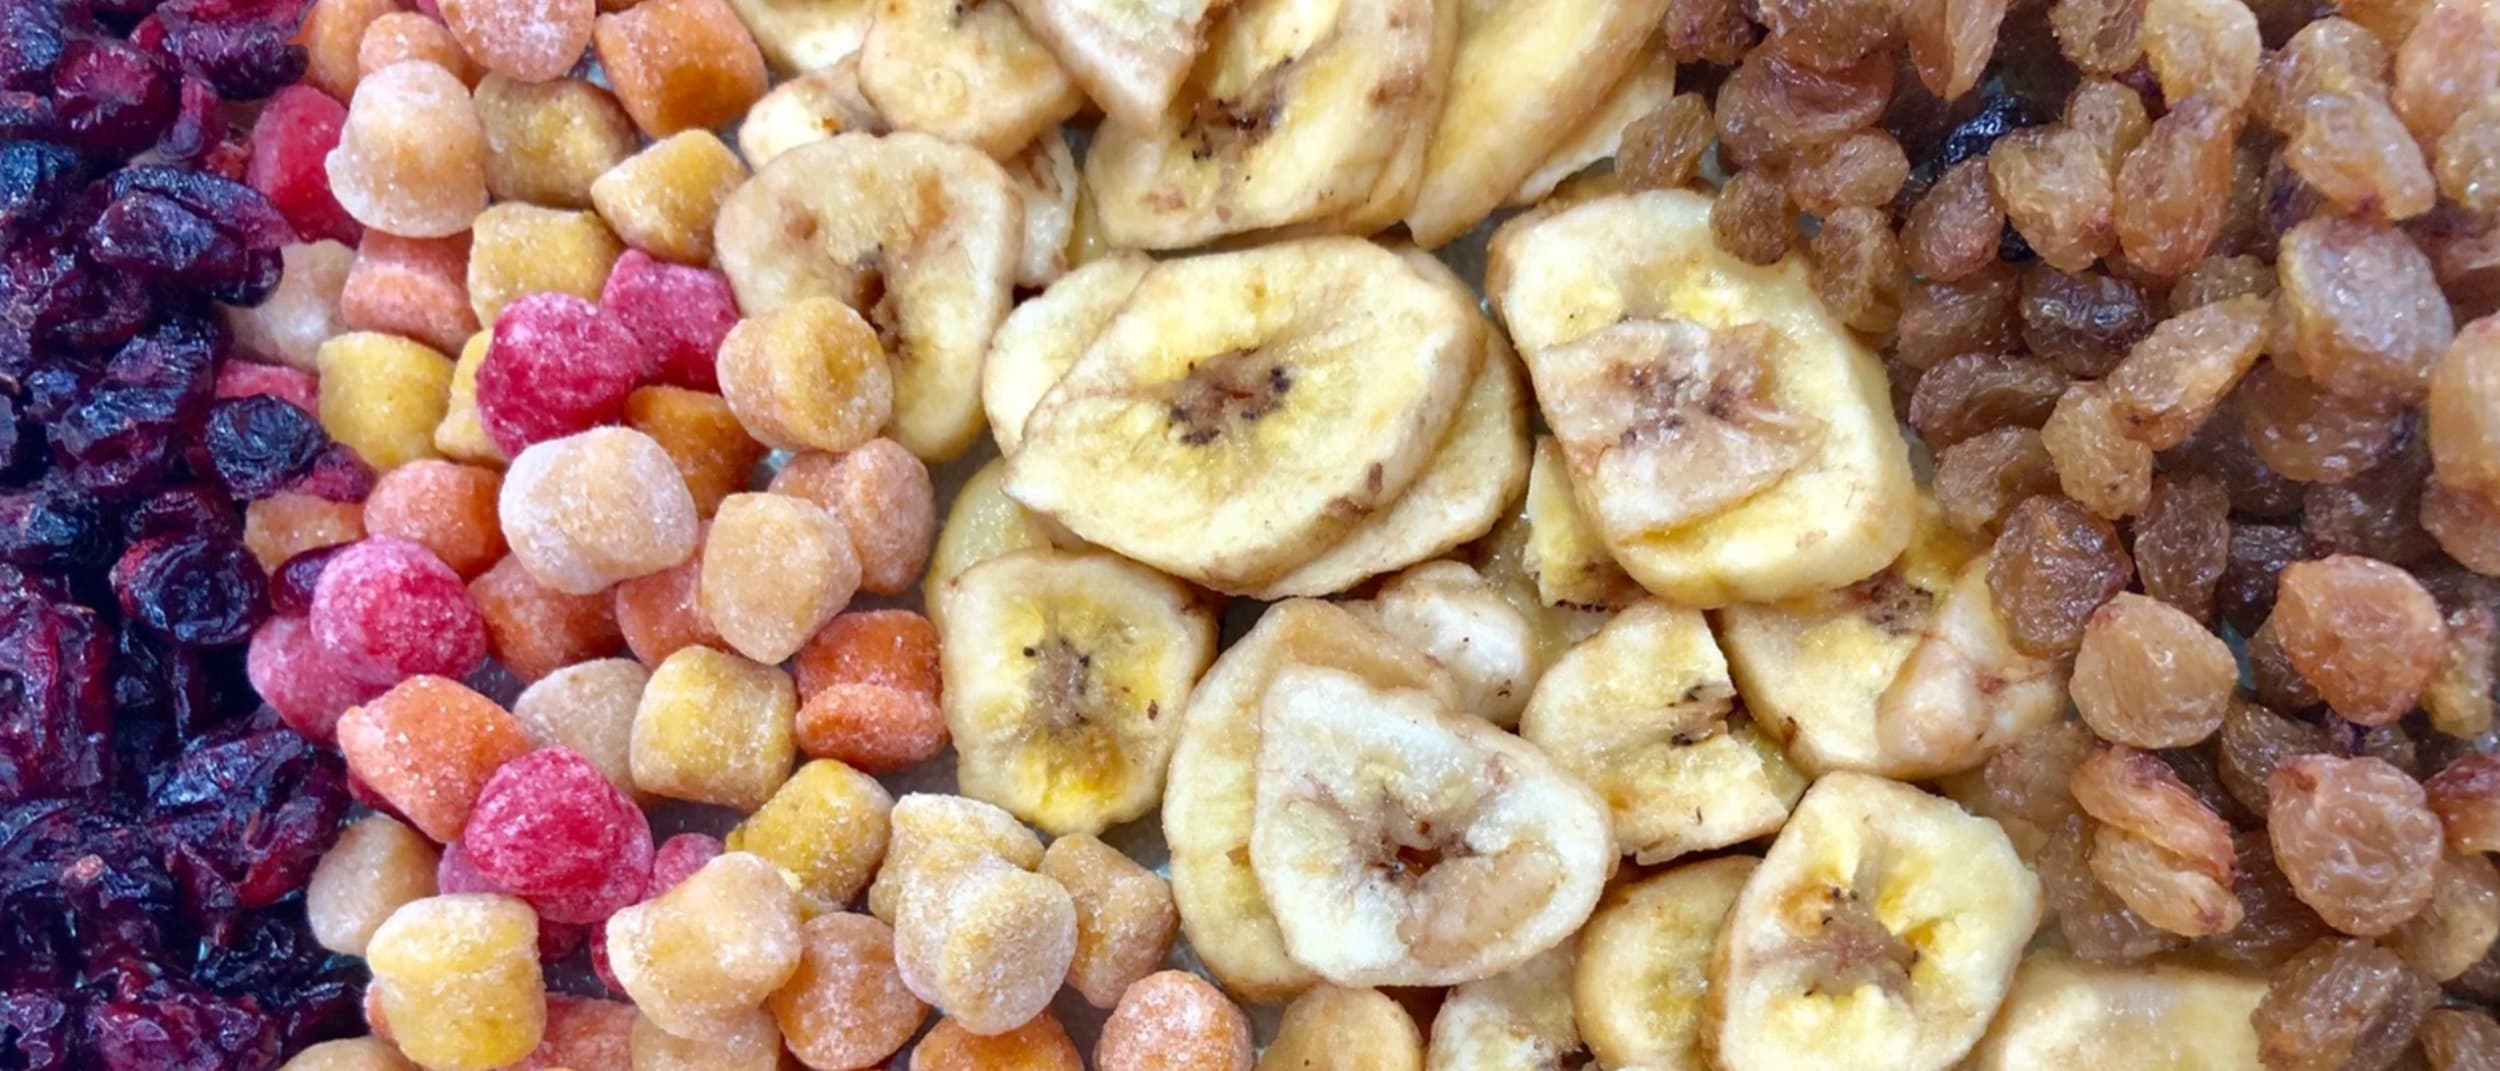 Feed your wild ones at our Happy Trails Snack Bar